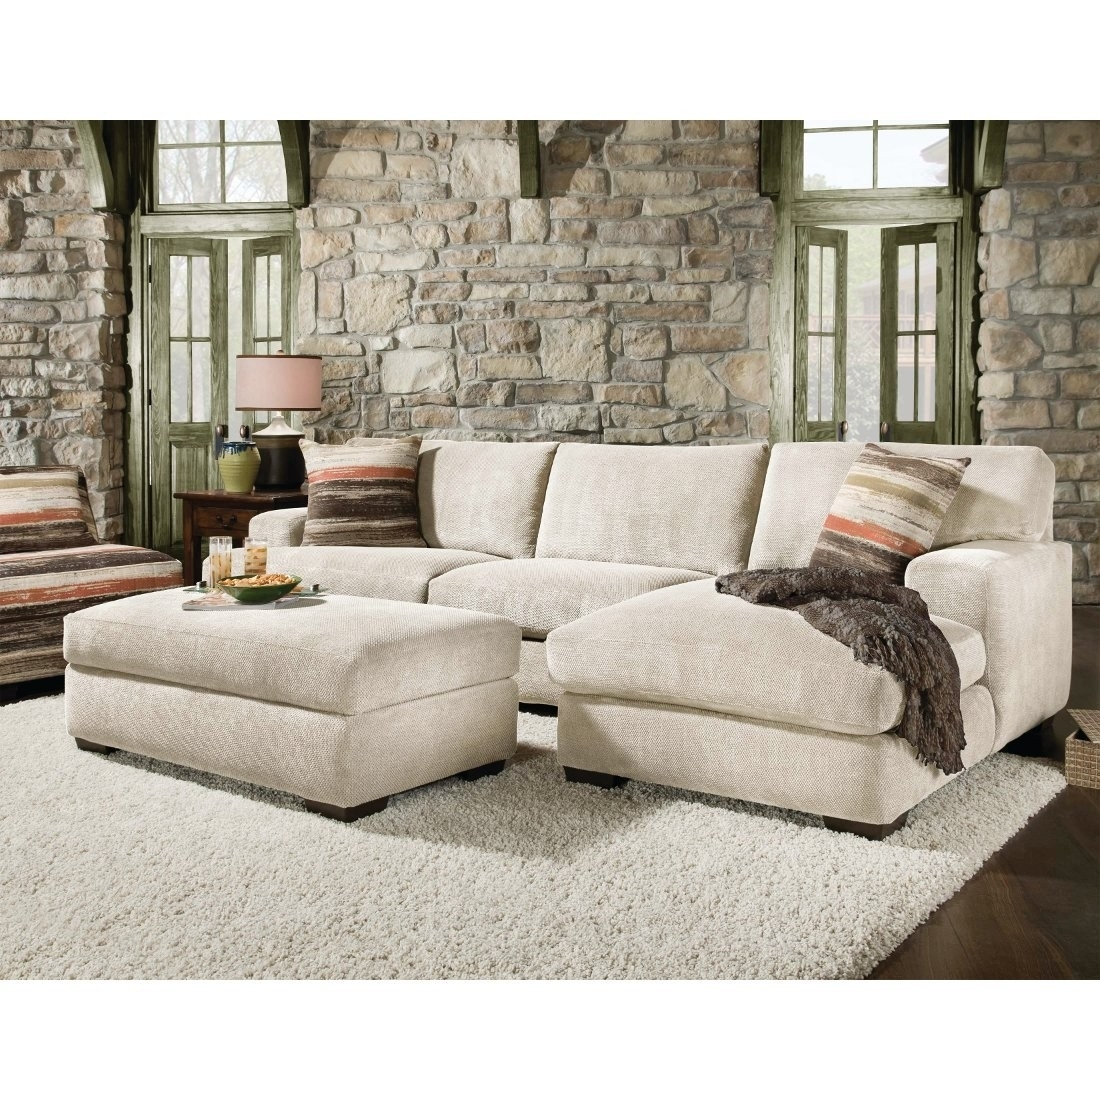 Oversized Sectional Sofa Idea — Awesome Homes : Super Comfortable throughout Sectional Sofas With Oversized Ottoman